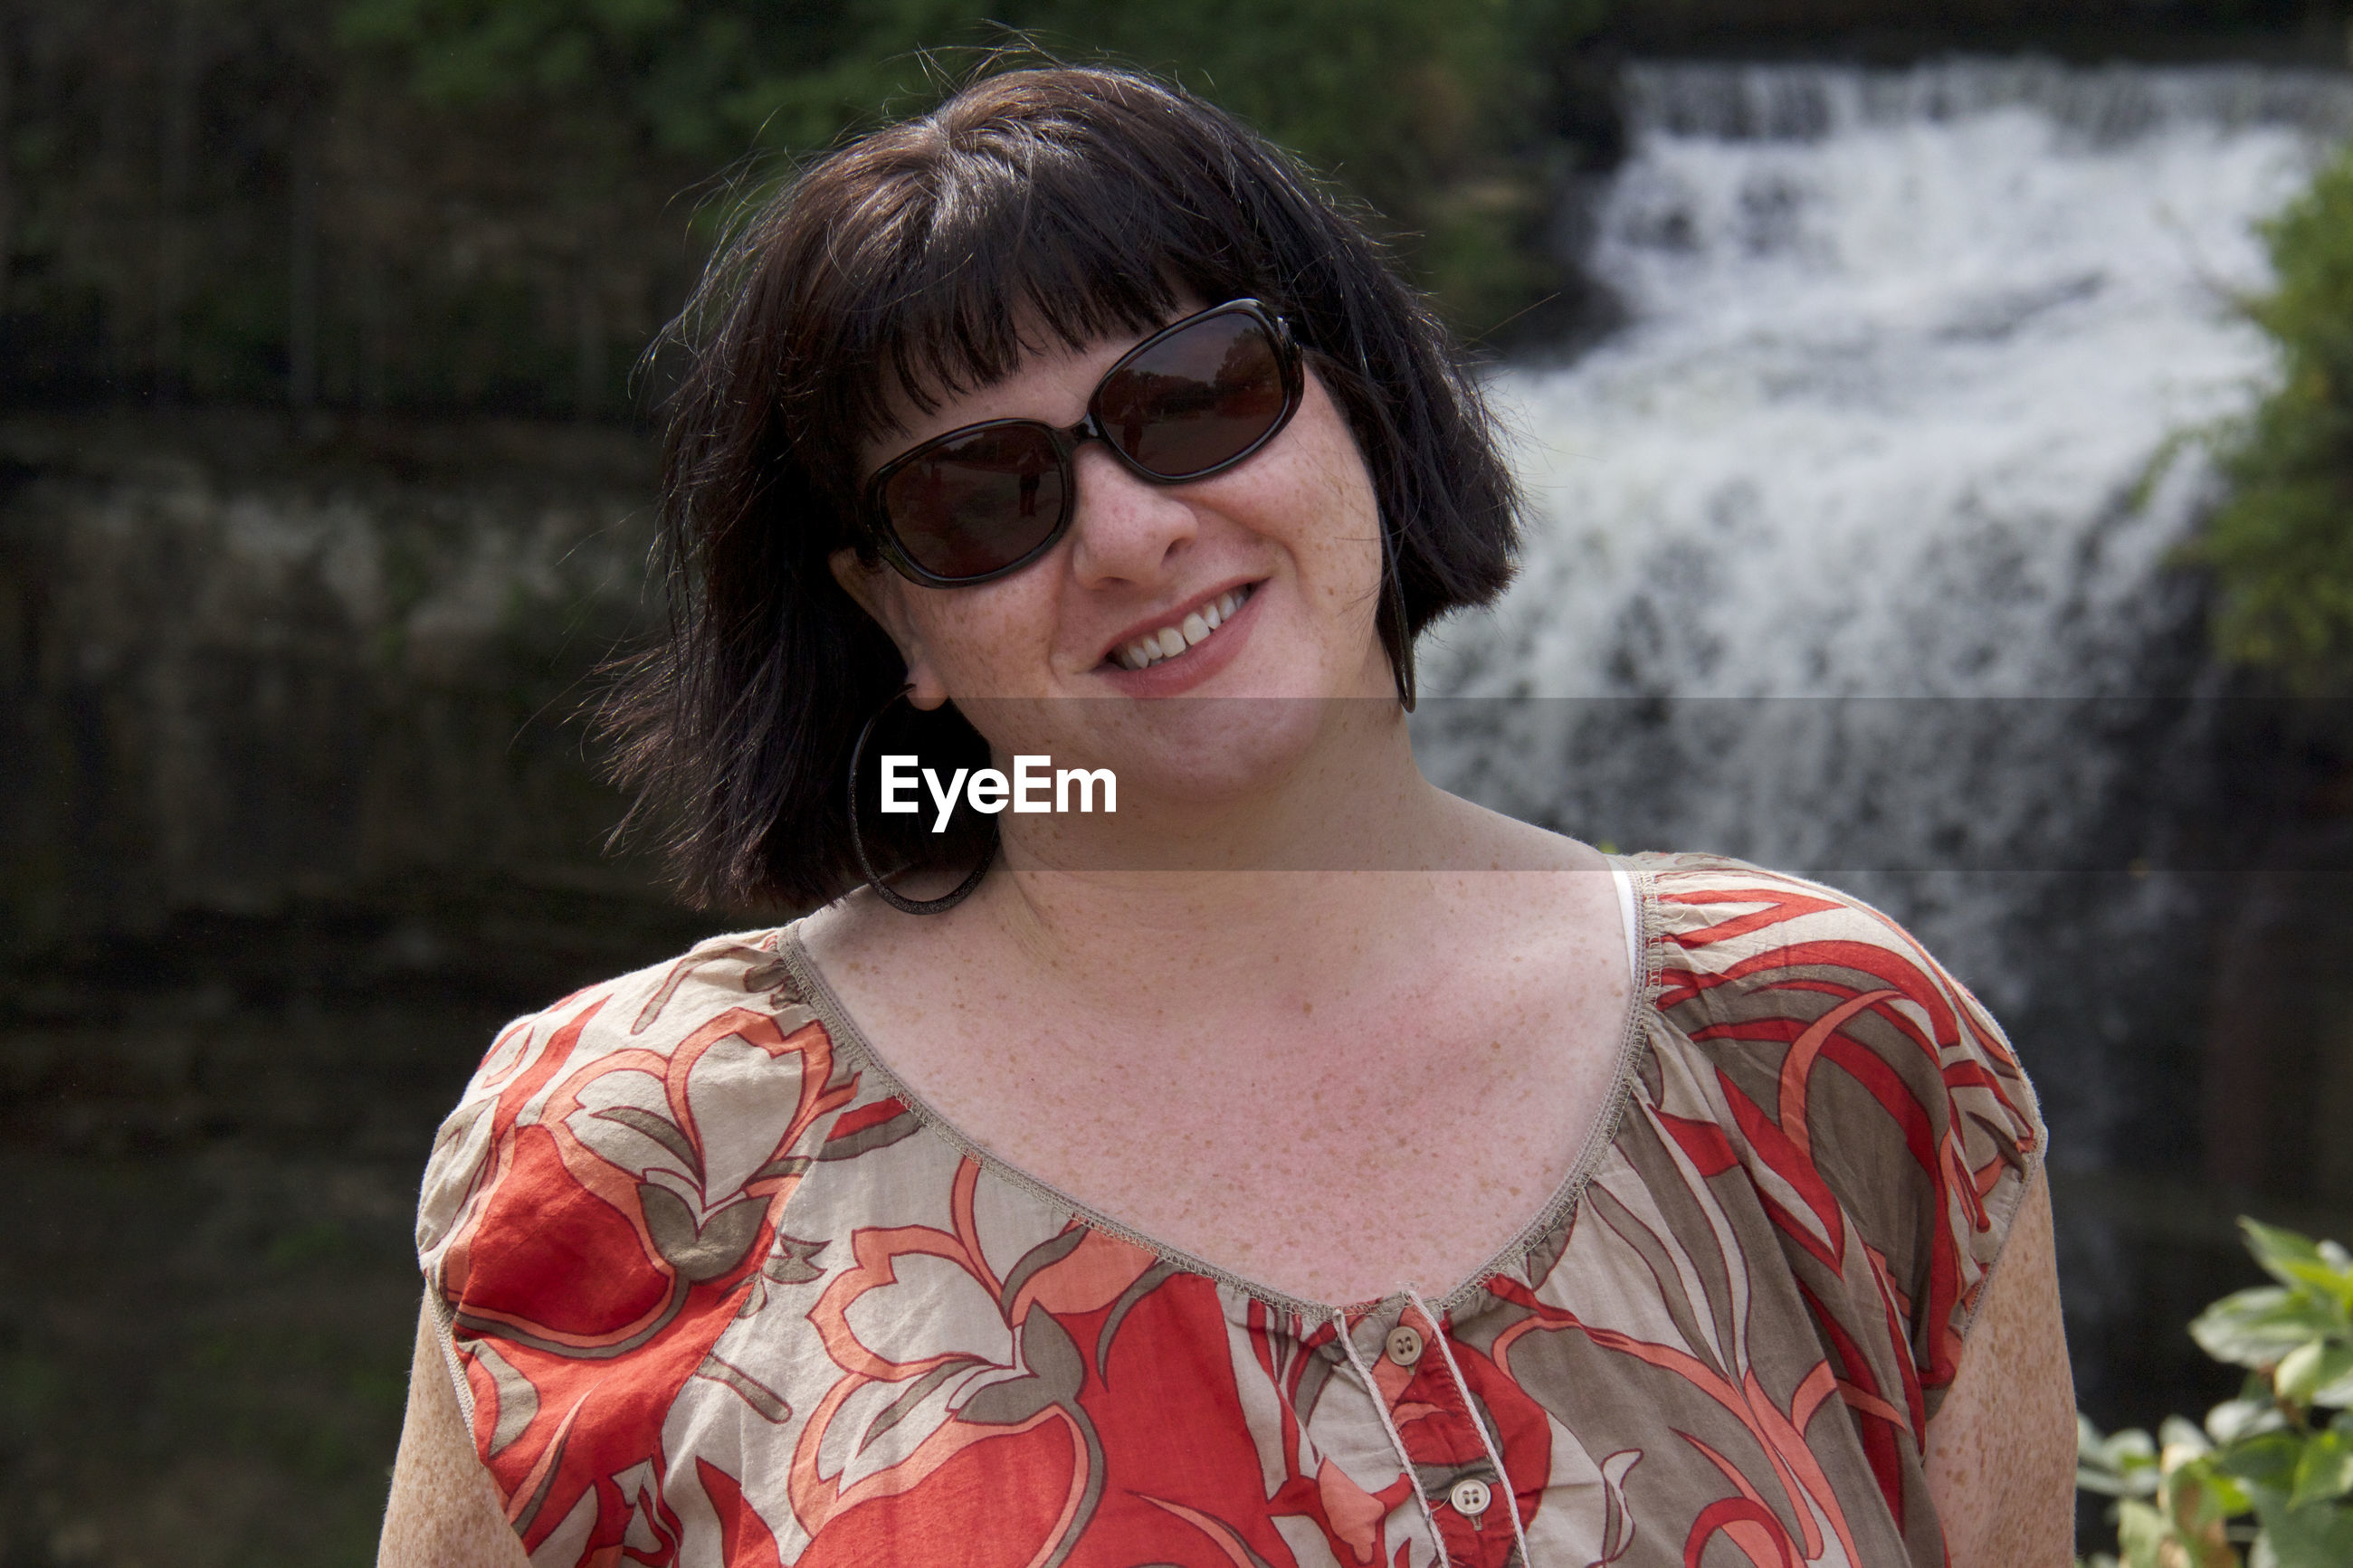 Portrait of smiling overweight woman wearing sunglasses against waterfall